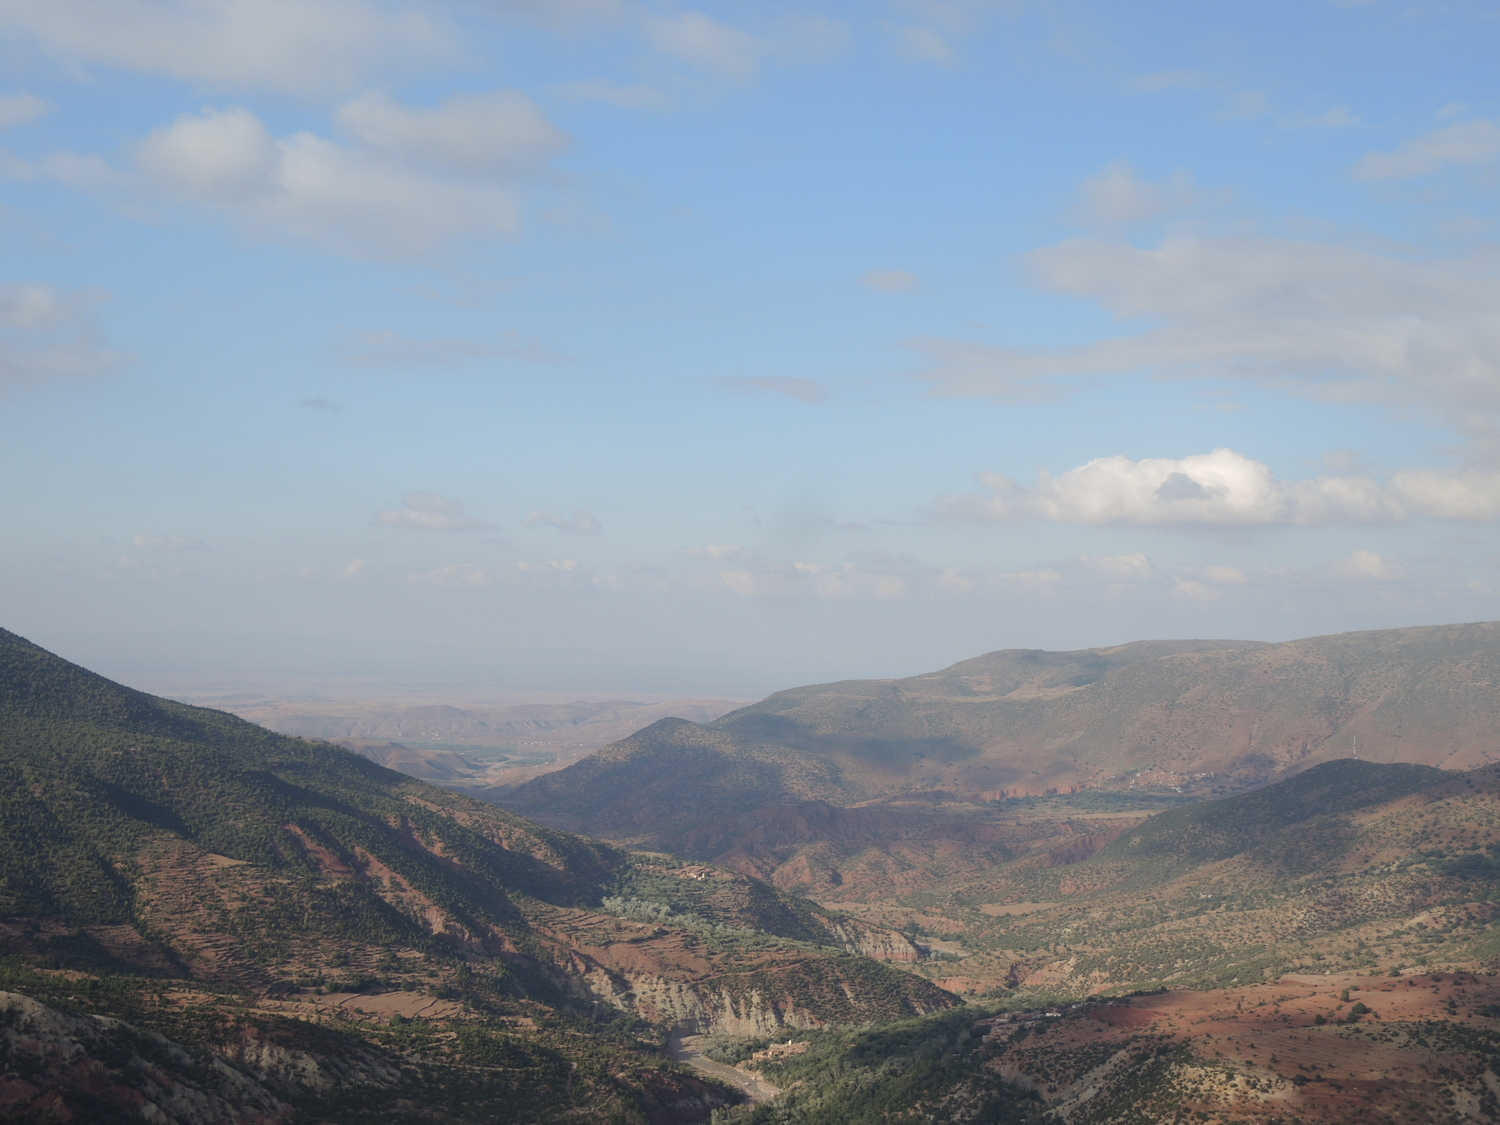 Valleys of the Atlas Mountains on the way to Marrakech